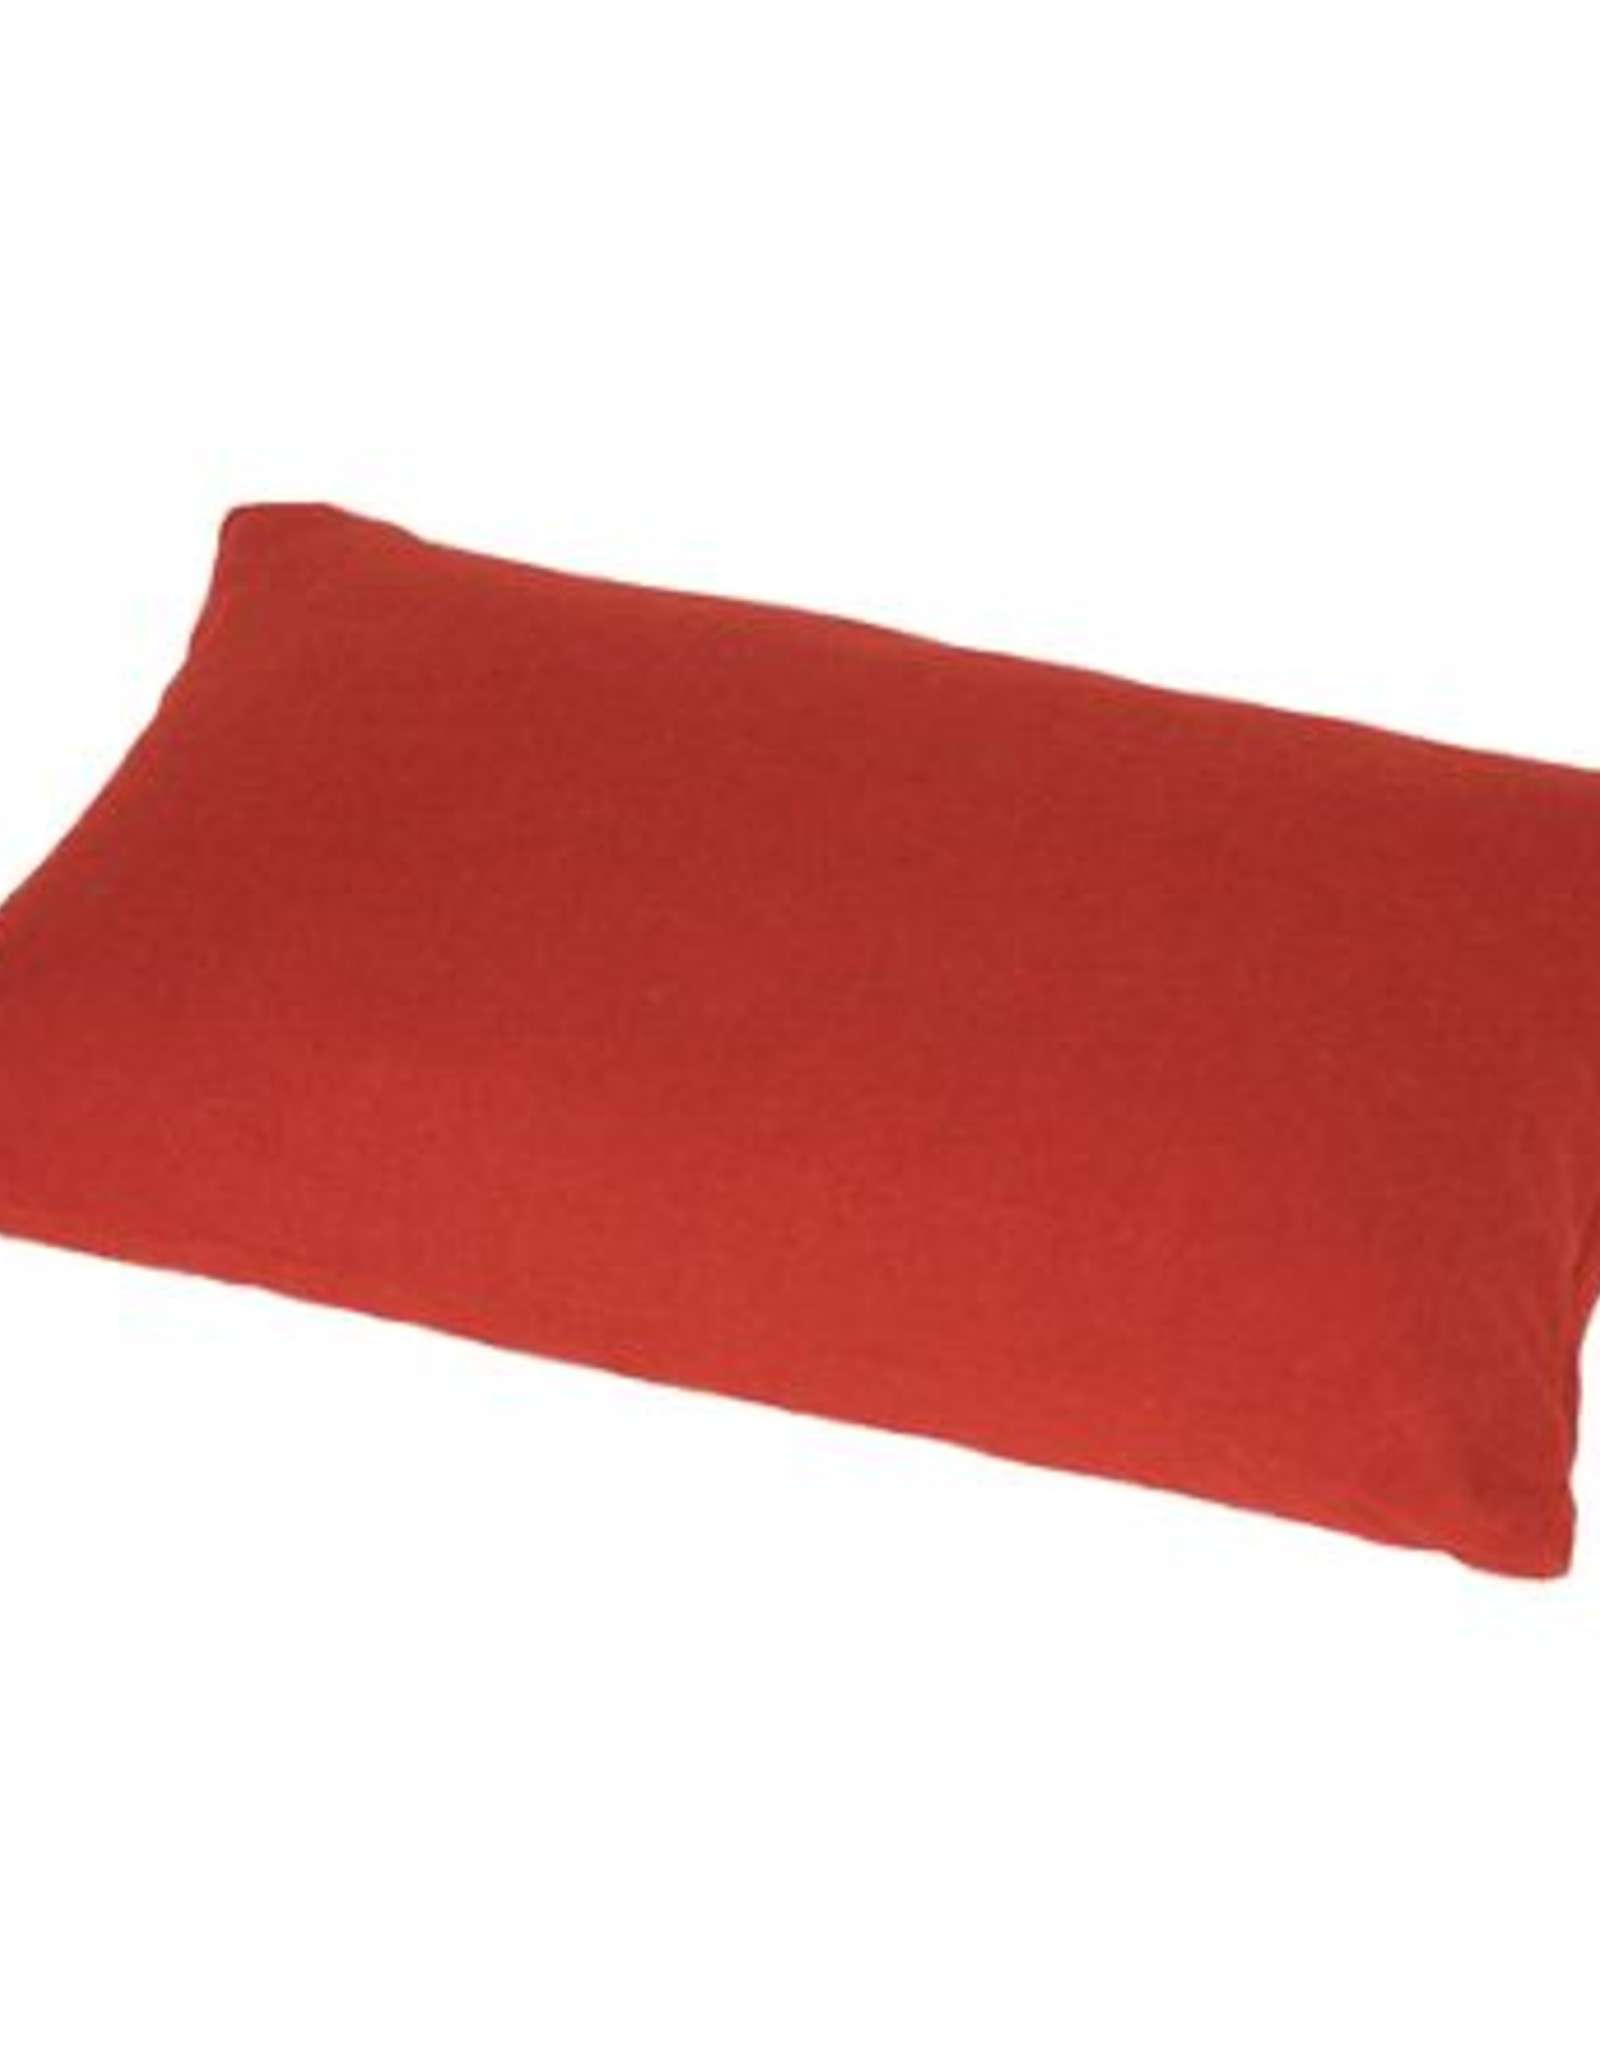 Elvang Classic Cushion red